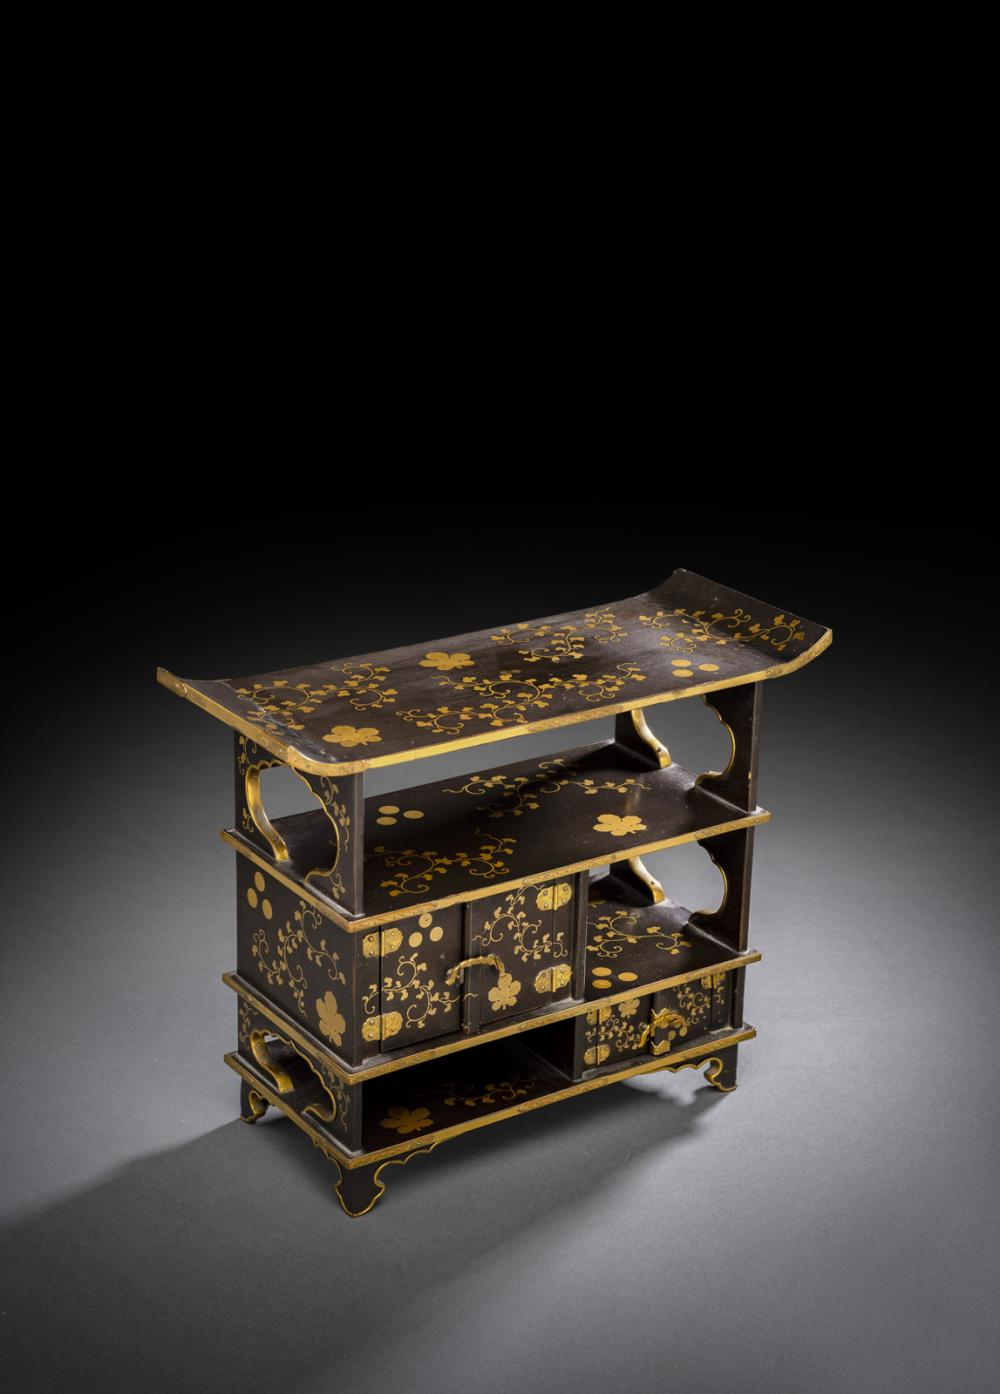 A SMALL GOLD-INLAID LACQUER CABINET